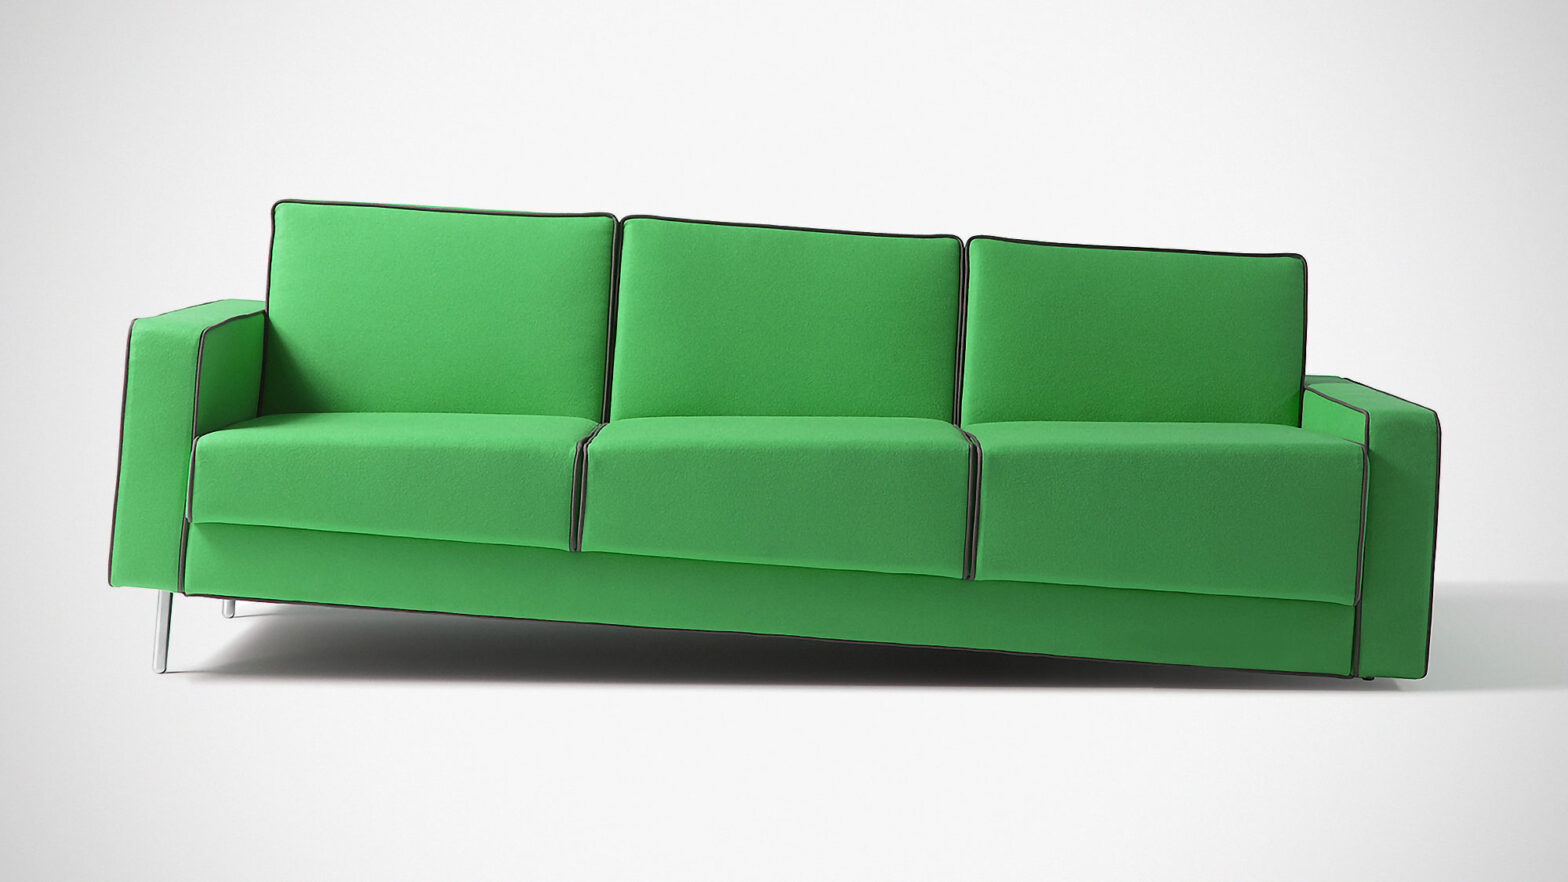 Capellini Adaptation Sofa by Fabio Novembre